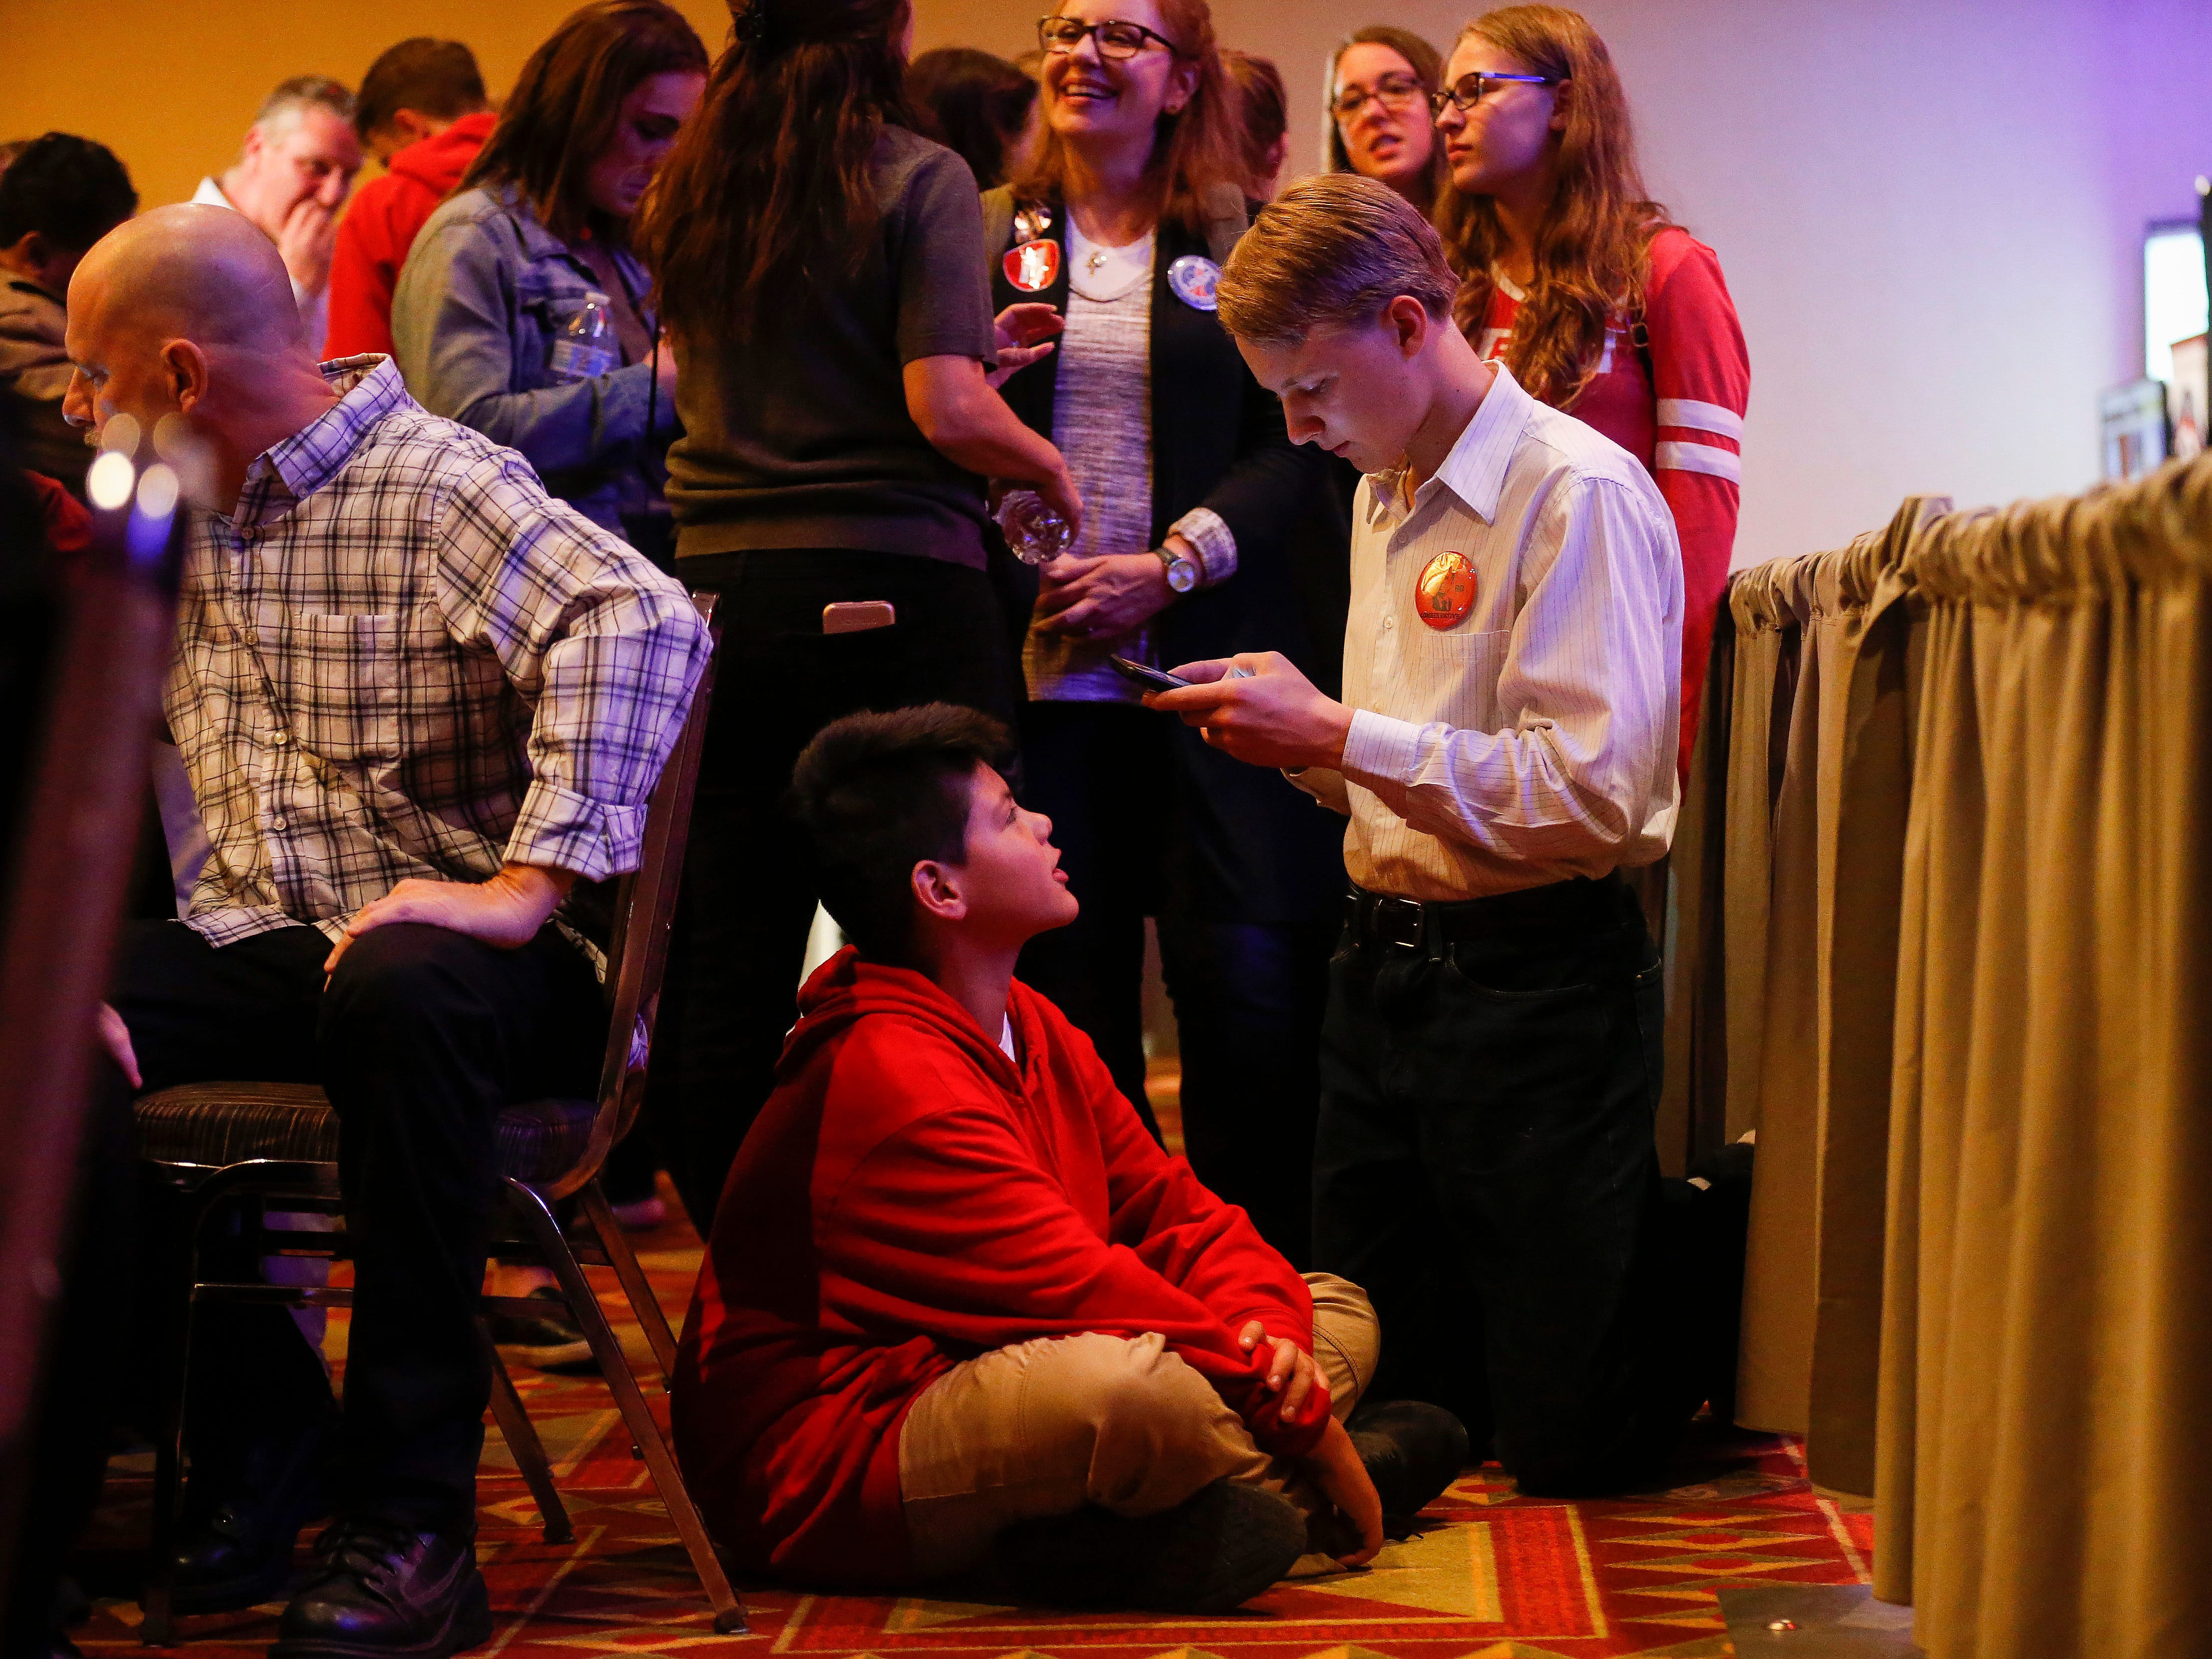 Adrik Fisher, 16, right, and Zachariah Lynch, 11, check as results come in at the Greene County Republican's watch party at the University Plaza hotel on Tuesday, Nov. 6, 2018.